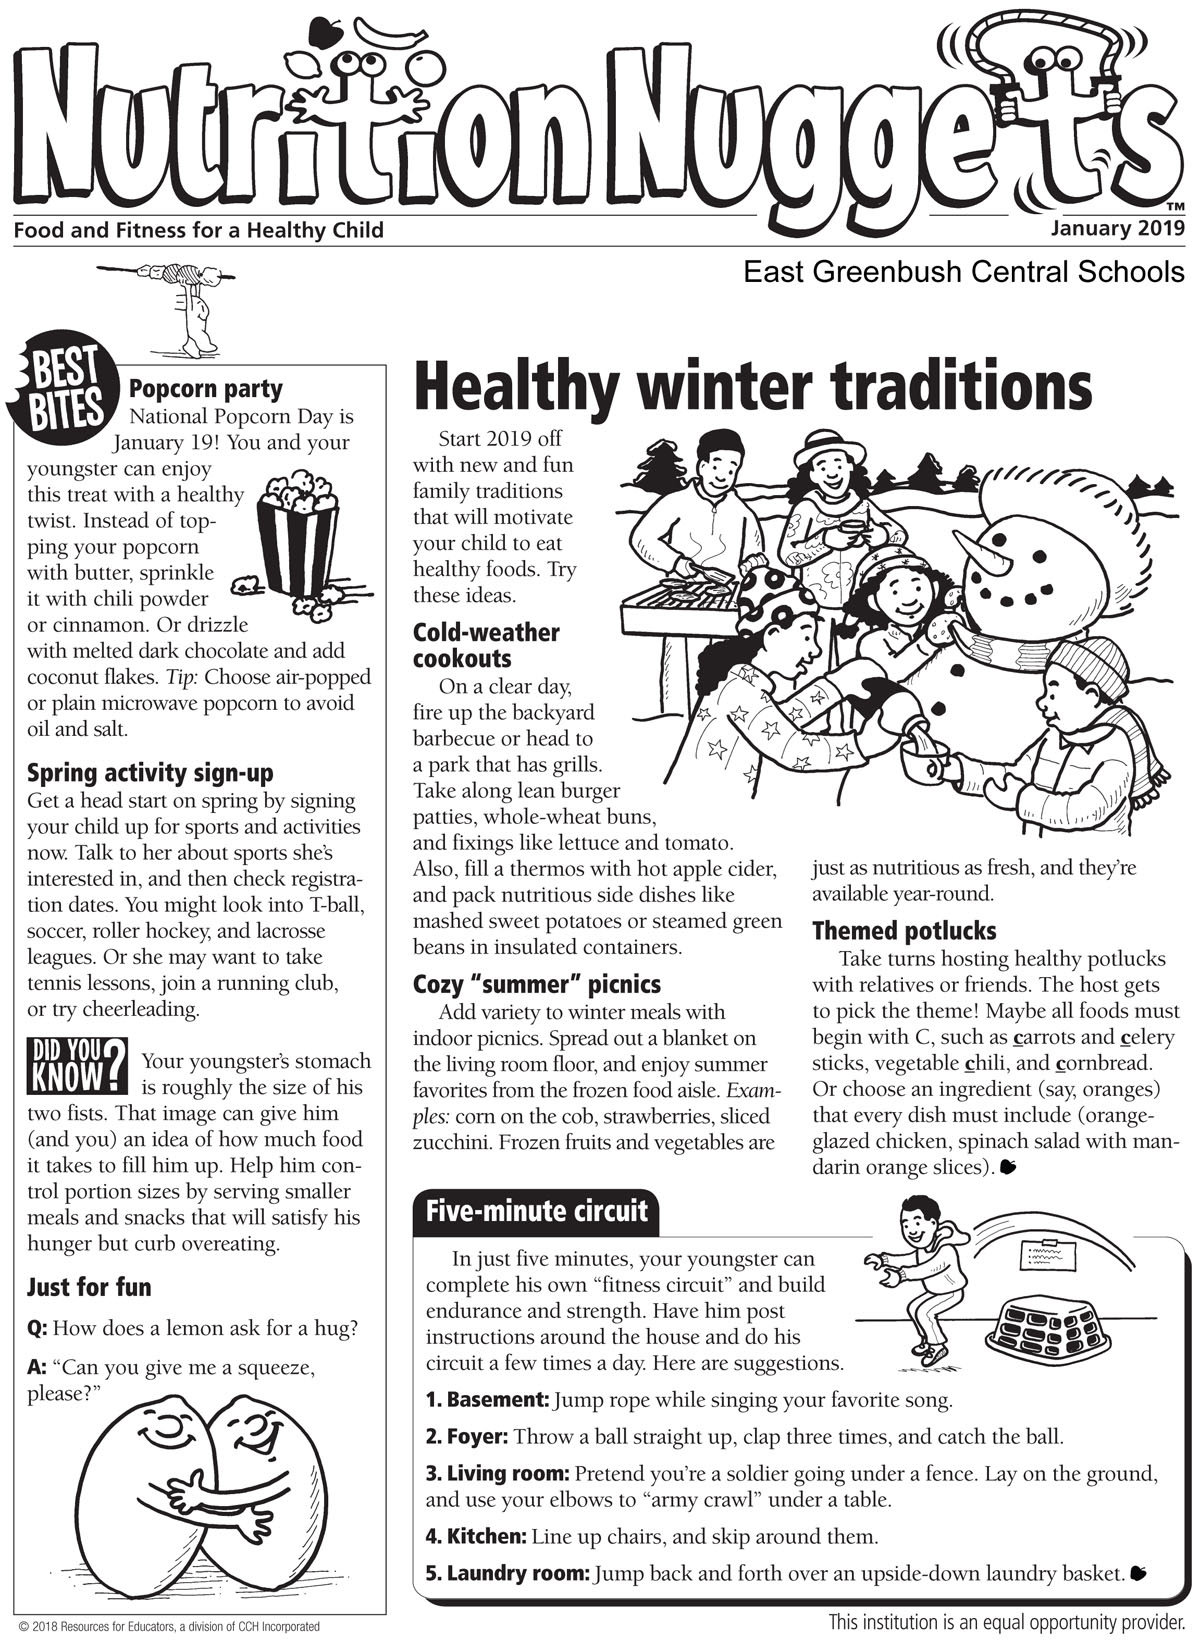 Nutrition Nuggets January 2019 page 1